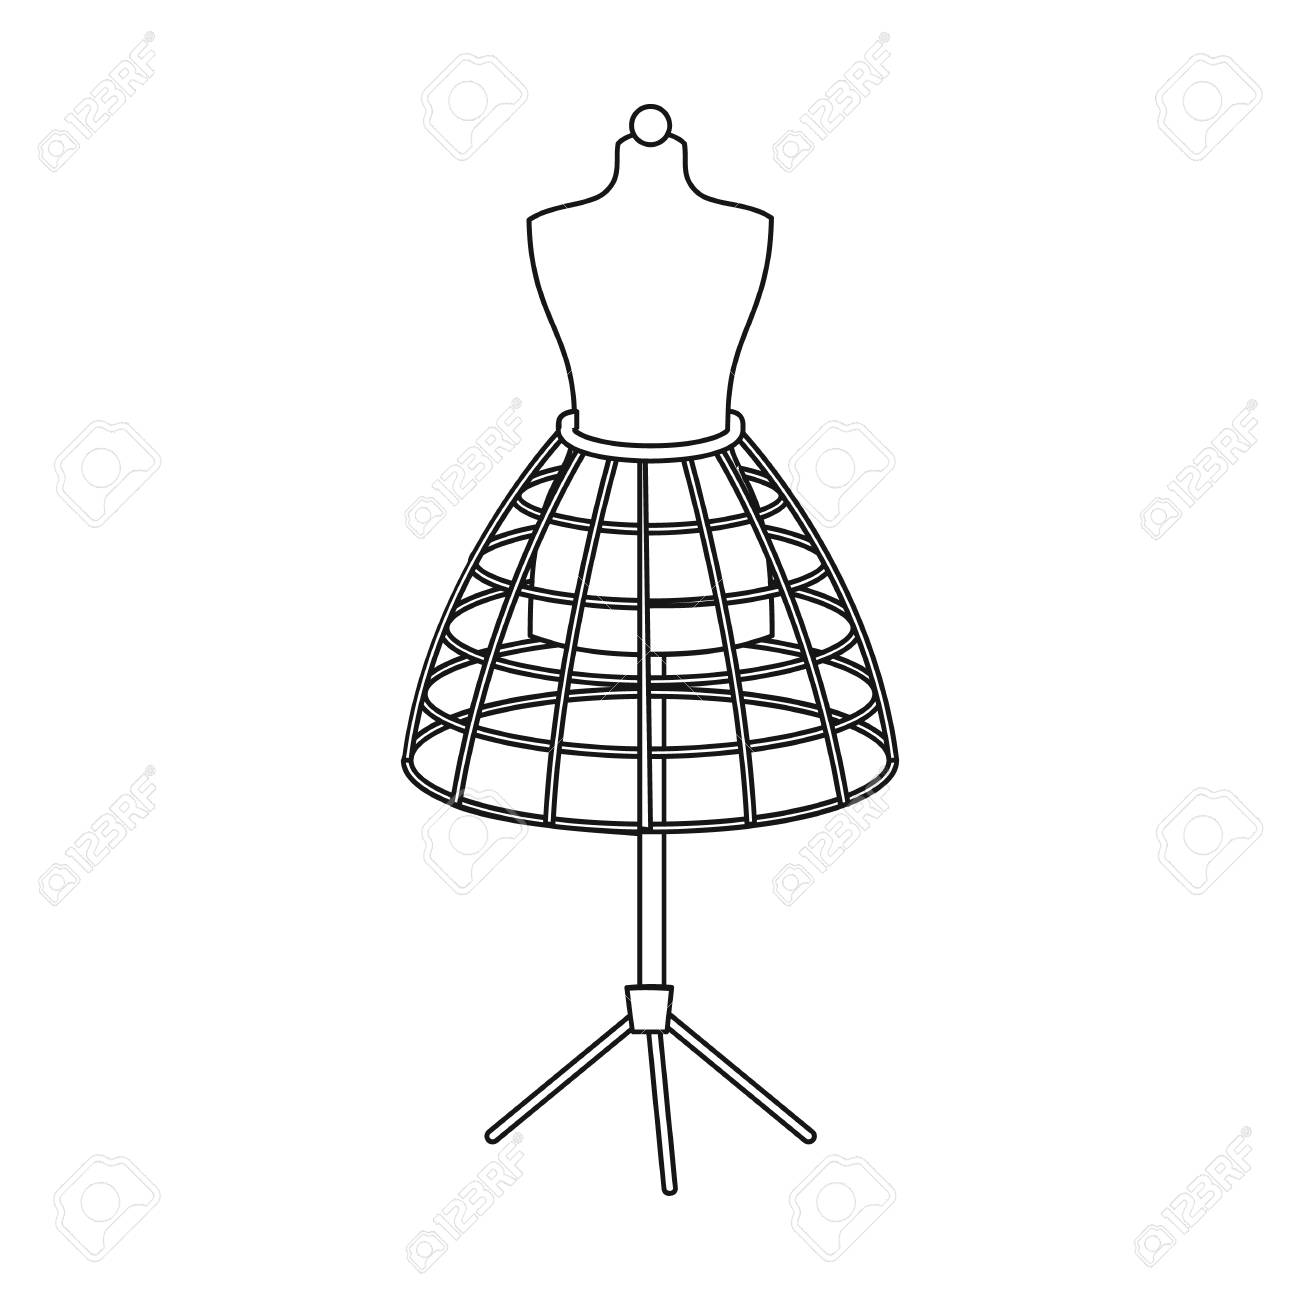 1300x1300 Equipment, Mannequin For Sewing Womens Clothing. Sewing